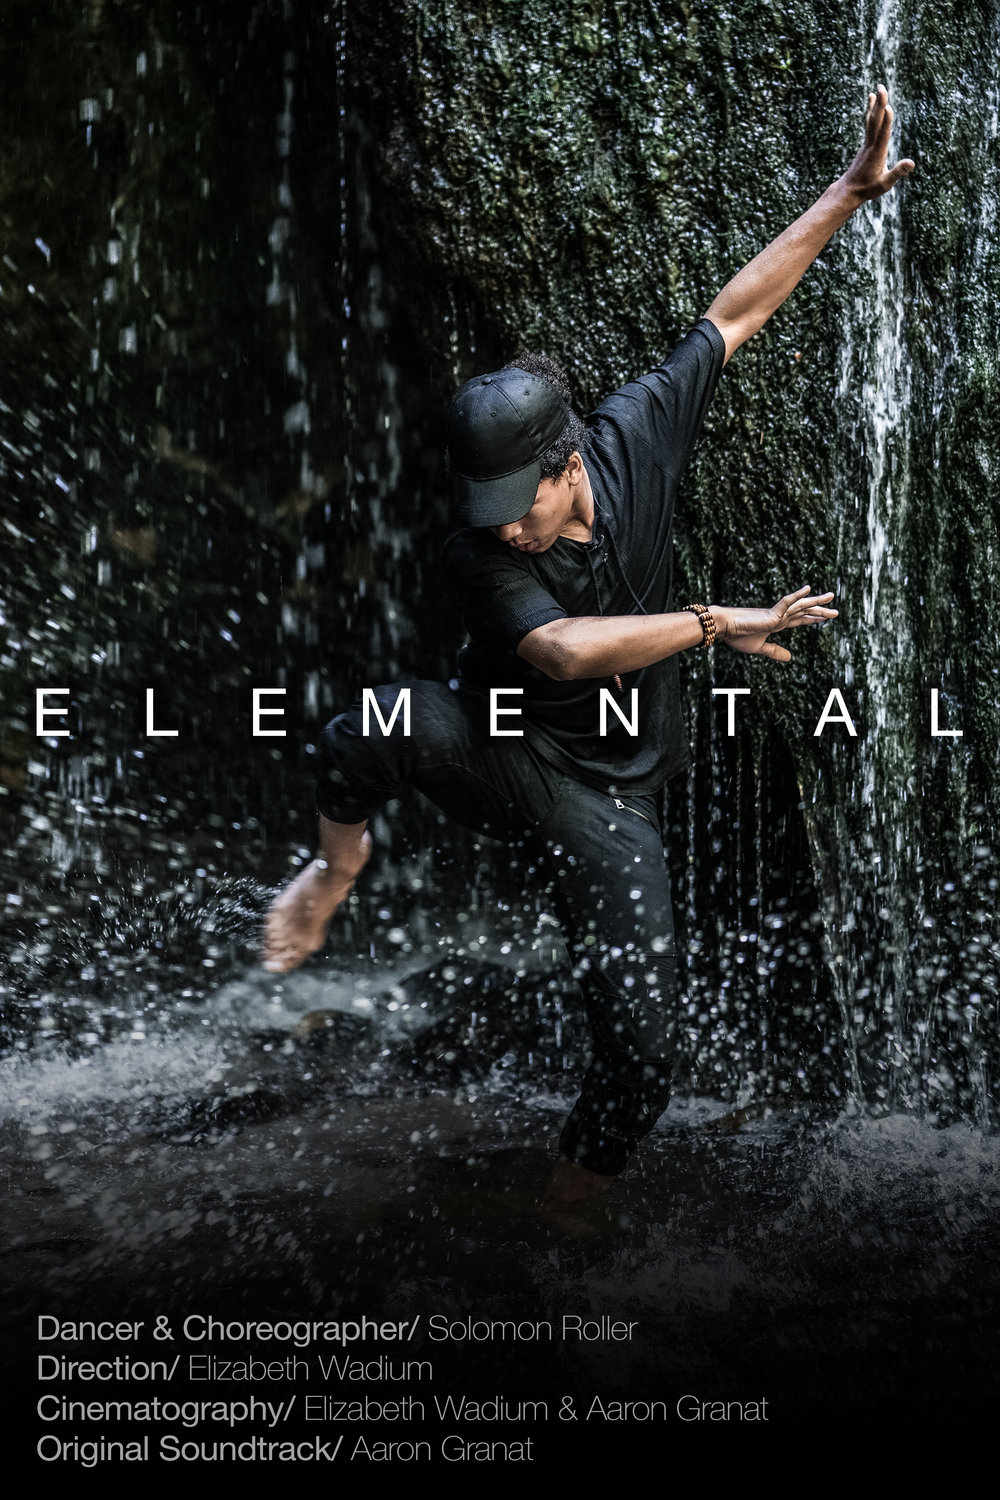 Elemental - director, cinematographer (currently in submission)StandardVision Award for Artistic Merit2018 Capitol Dance & Cinema Festival2018 Flatlands Dance Film Festival2018 Portland Dance Film Fest2018 Cascadia Dance & Cinema Festival2018 Wisconsin Film Festival2018 Tiny Dance Film FestPressInterview with StandardVision